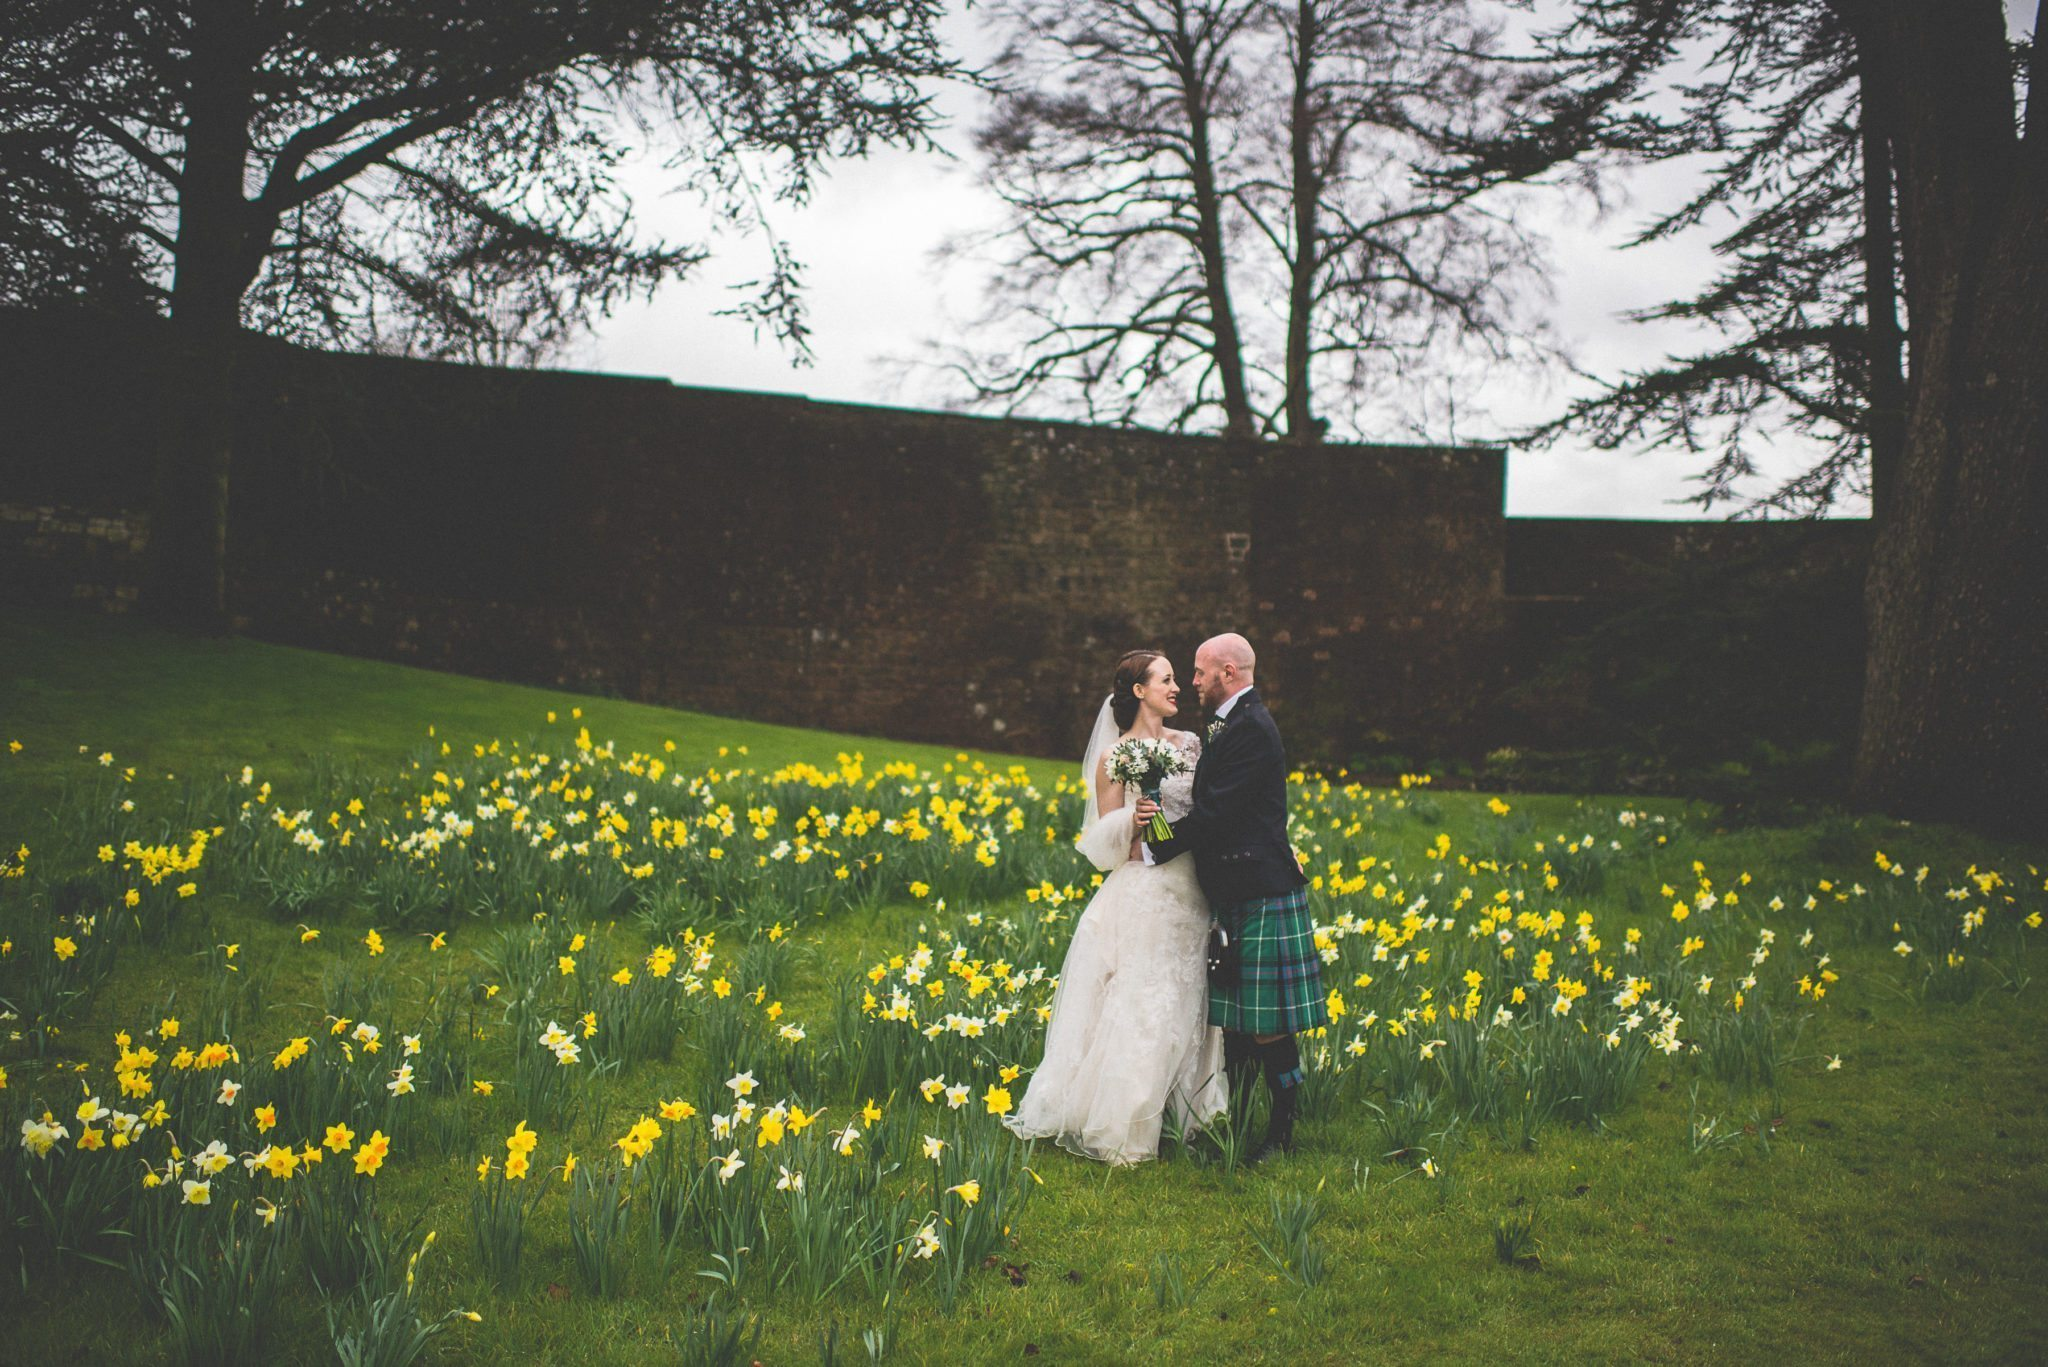 The couple stand amid a patch of daffodils in the grounds of Farnham Castle